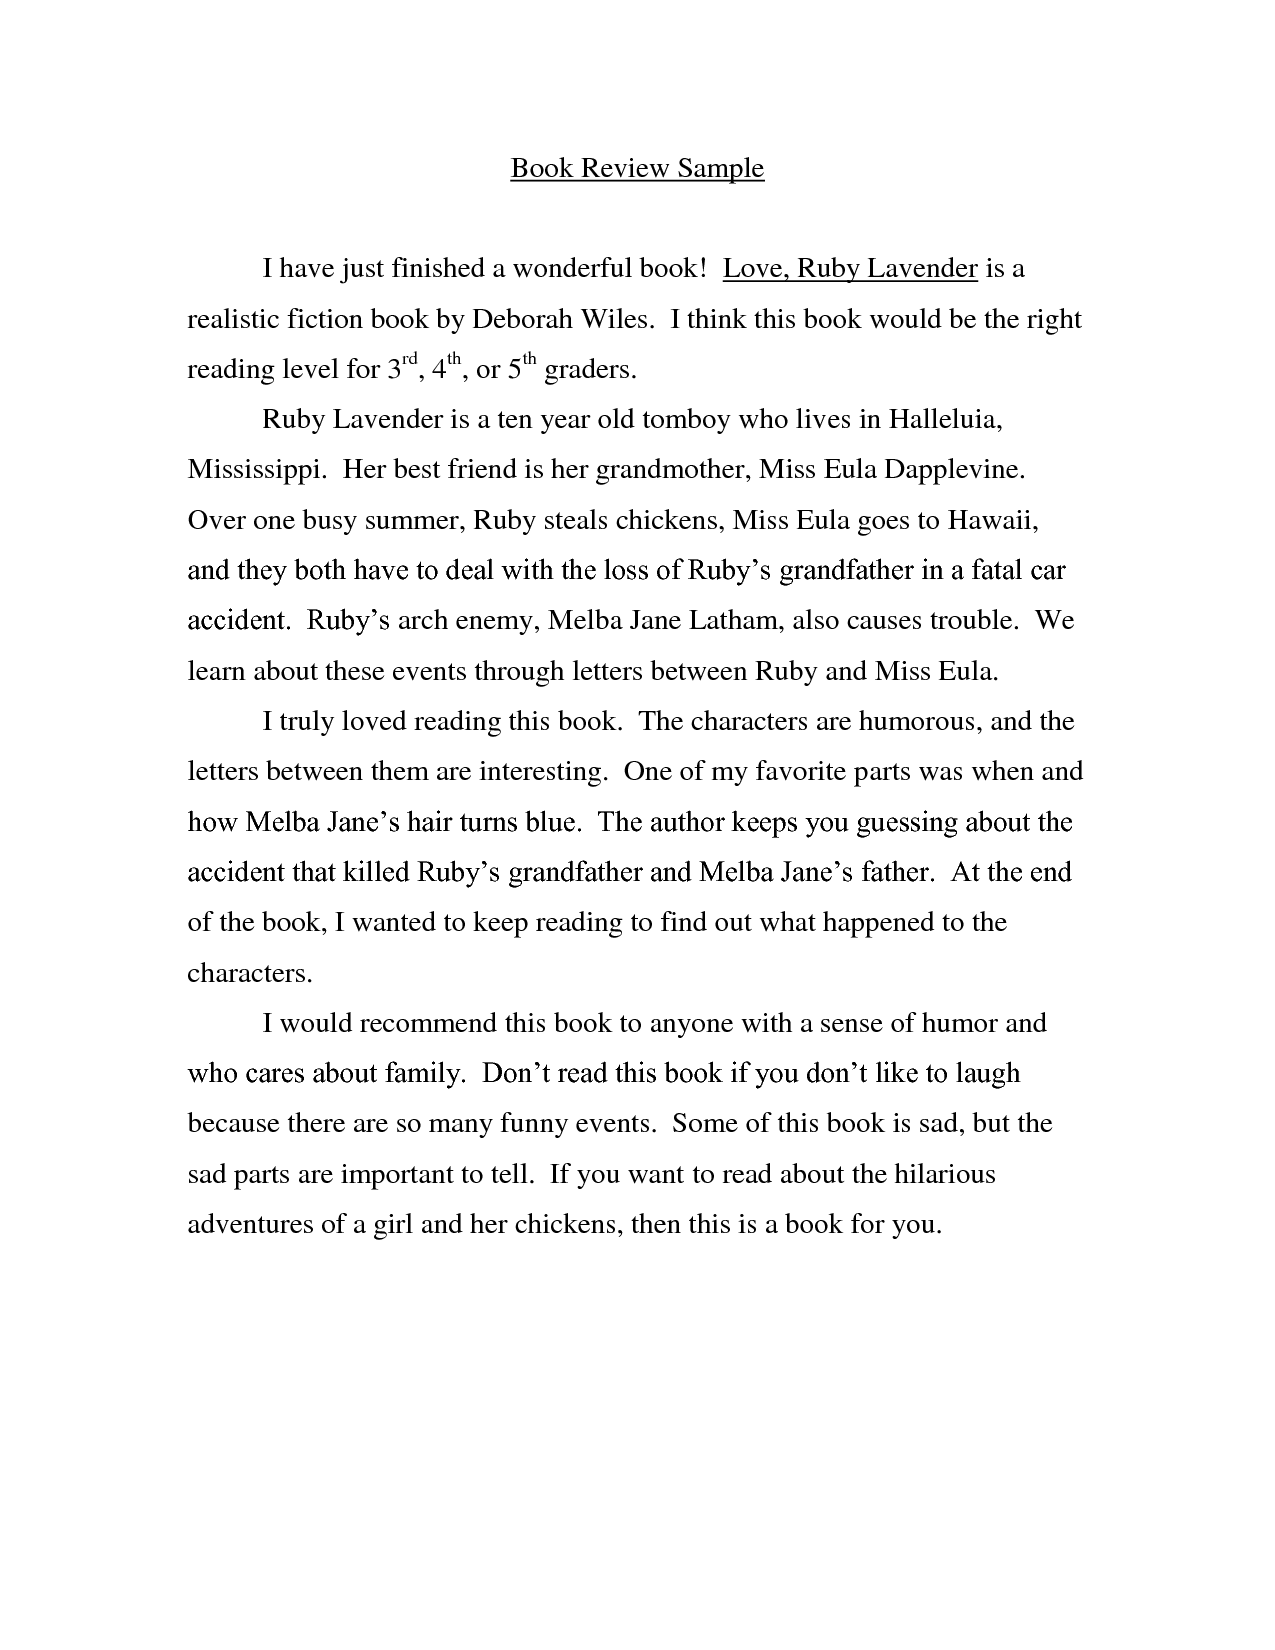 Essay on a book example